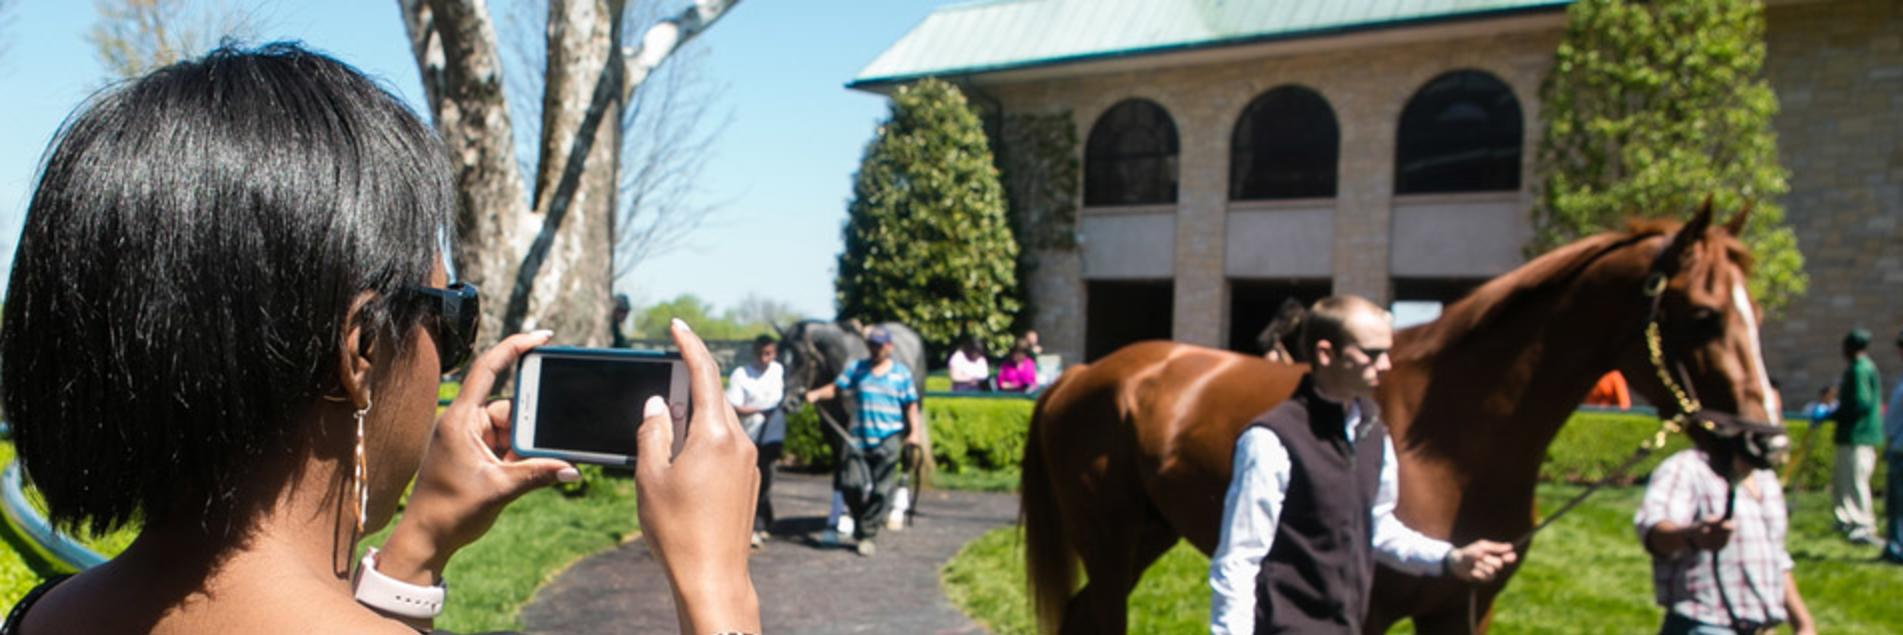 Photo Op in the Paddock at Keeneland